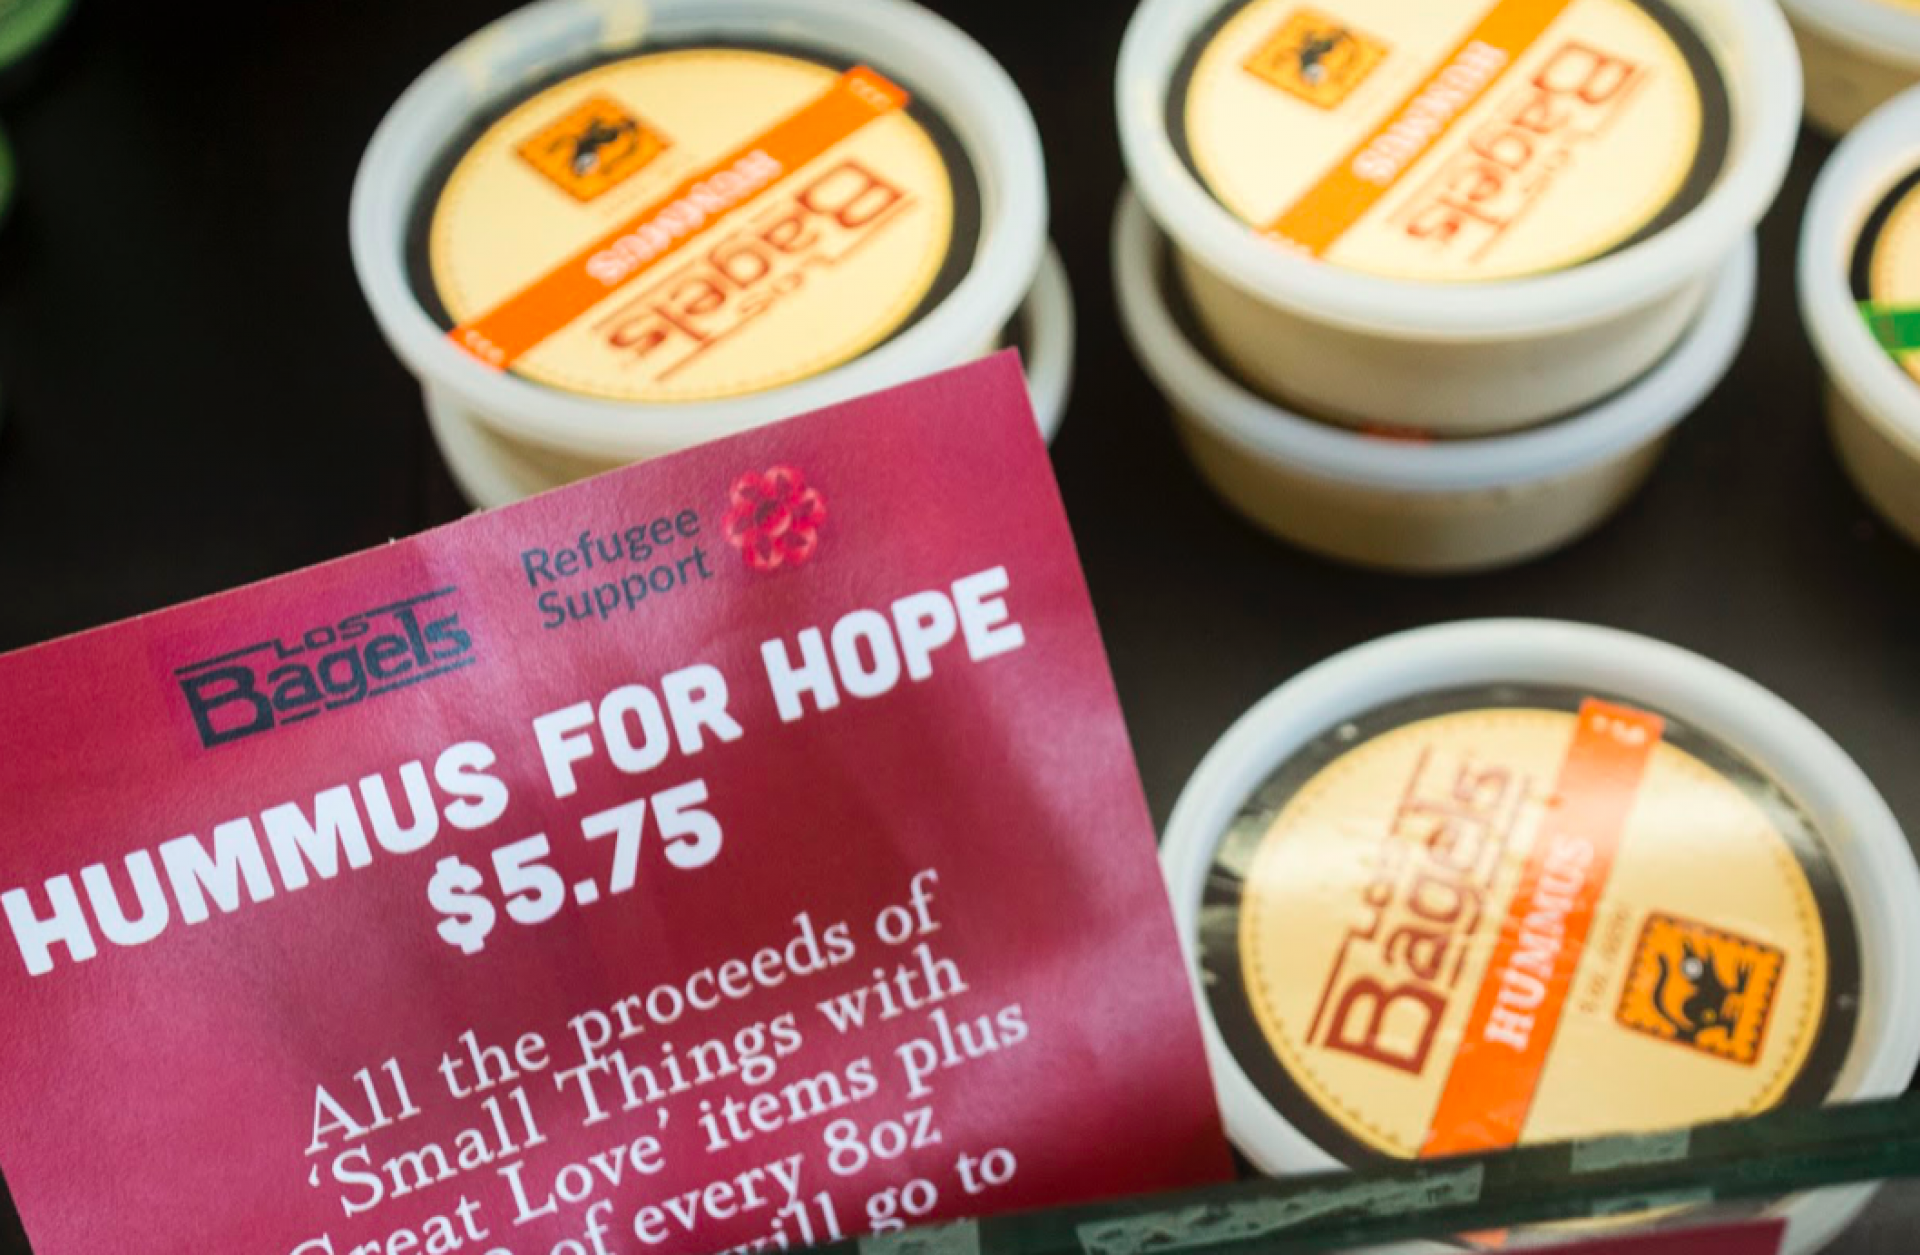 Packaged hummus at Los Bagels in Arcata. Photo by Bailey Tennery.